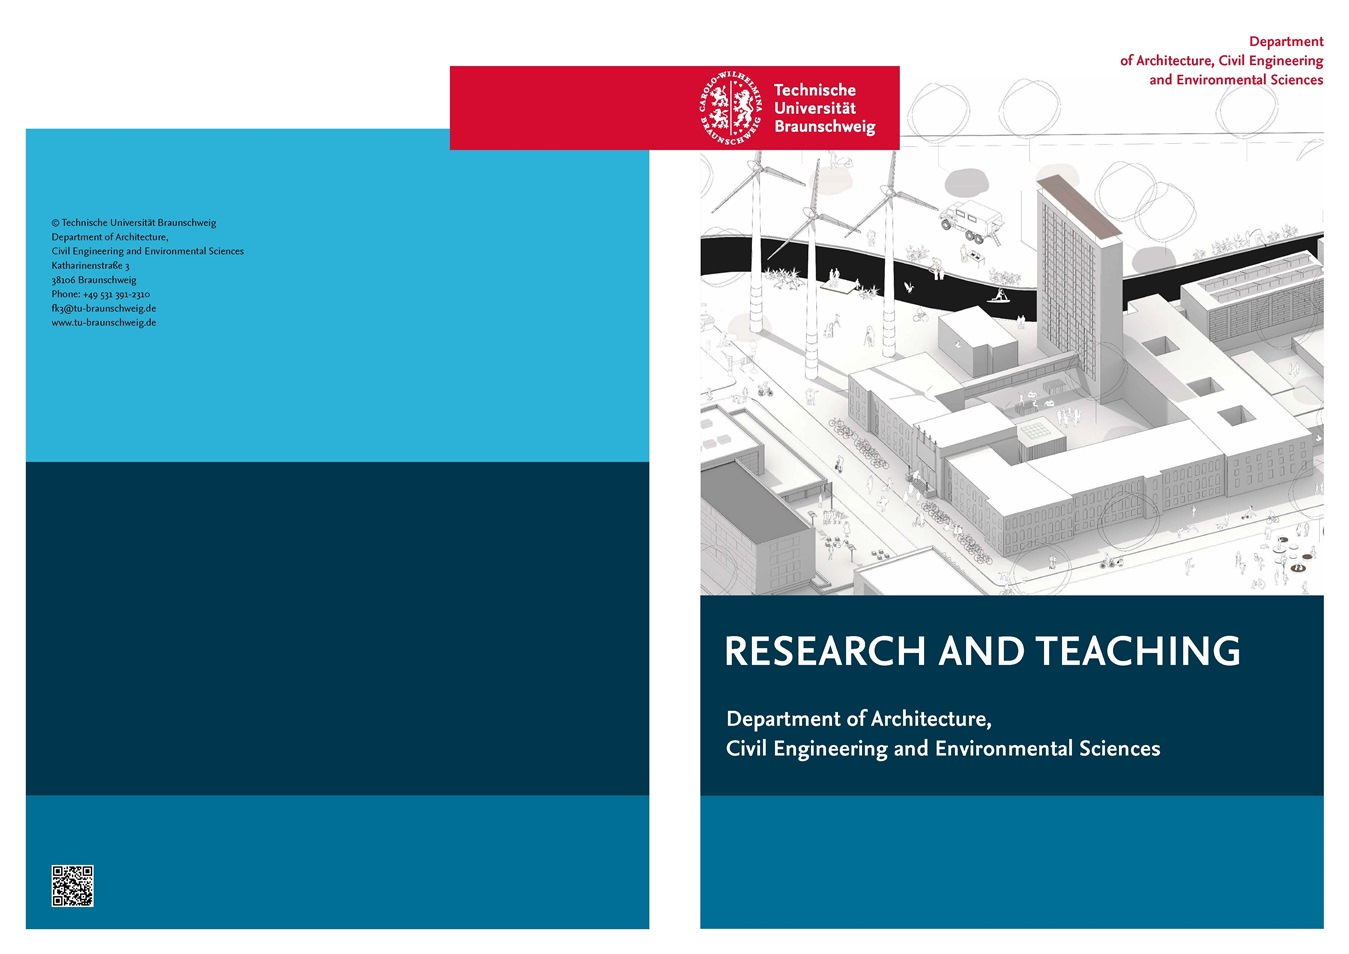 RESEARCH AND TEACHING